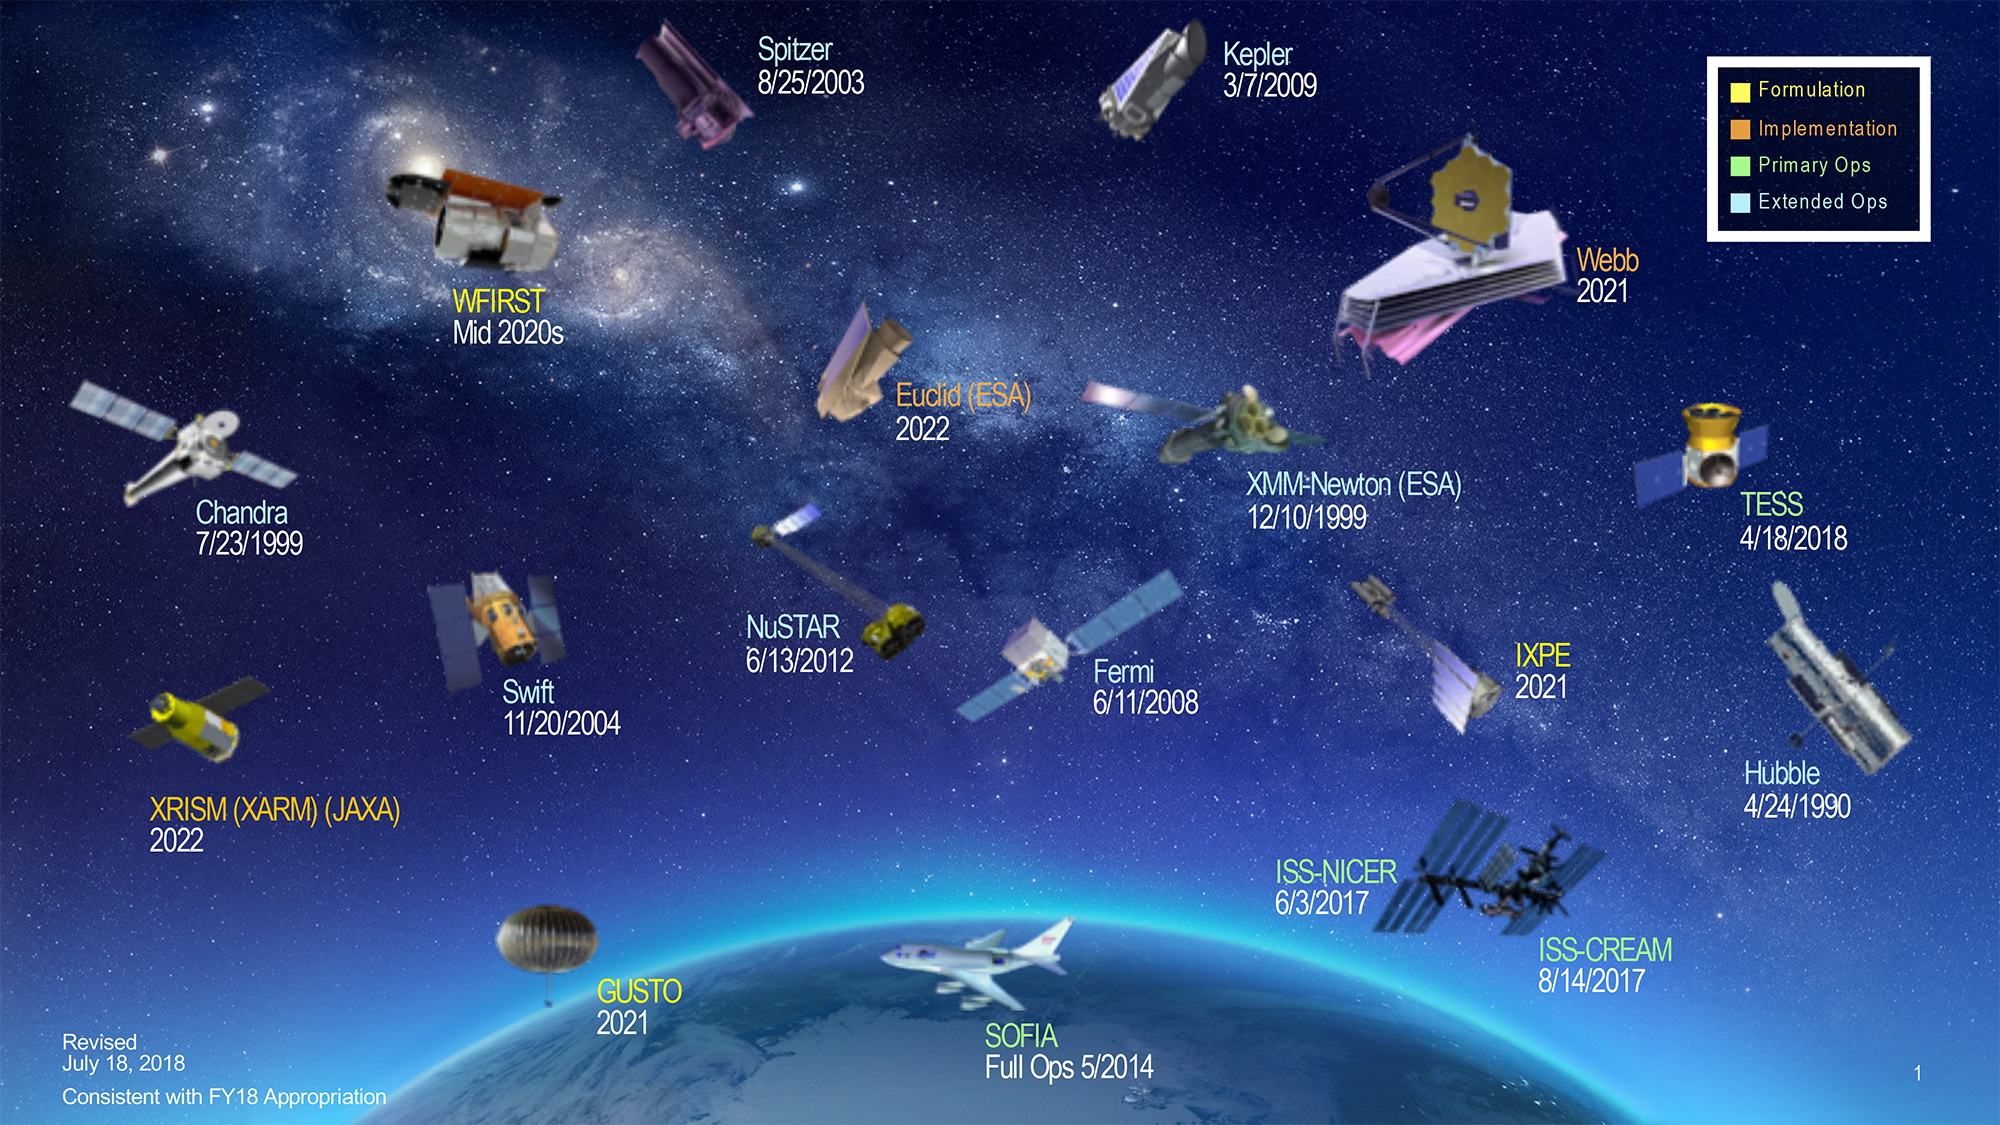 Chart of  NASA Astrophysics  missions   (revised July 2018)   Formulation:  GUSTO (2021), IXPE (2021), WFIRST (Mid 2020s)  Implementation: Euclid – ESA (2022), Webb (2021), XRISIM (XARM) (JAXA) (2022)  Primary Ops: ISS-CREAM (8/14/2017), ISS-NICER (6/3/2017), SOFIA (Full Ops, 5/2014),  TESS (4/18/2018)  Extended Ops: Chandra (7/23/1999), Fermi (6/11/2008), Hubble (4/24/1990), Kepler (3/7/2009), NuSTAR (6/13/2012),  Spitzer (8/25/2003), Swift (11/20/2004,  XMM-Newton – ESA (12/10/1999)